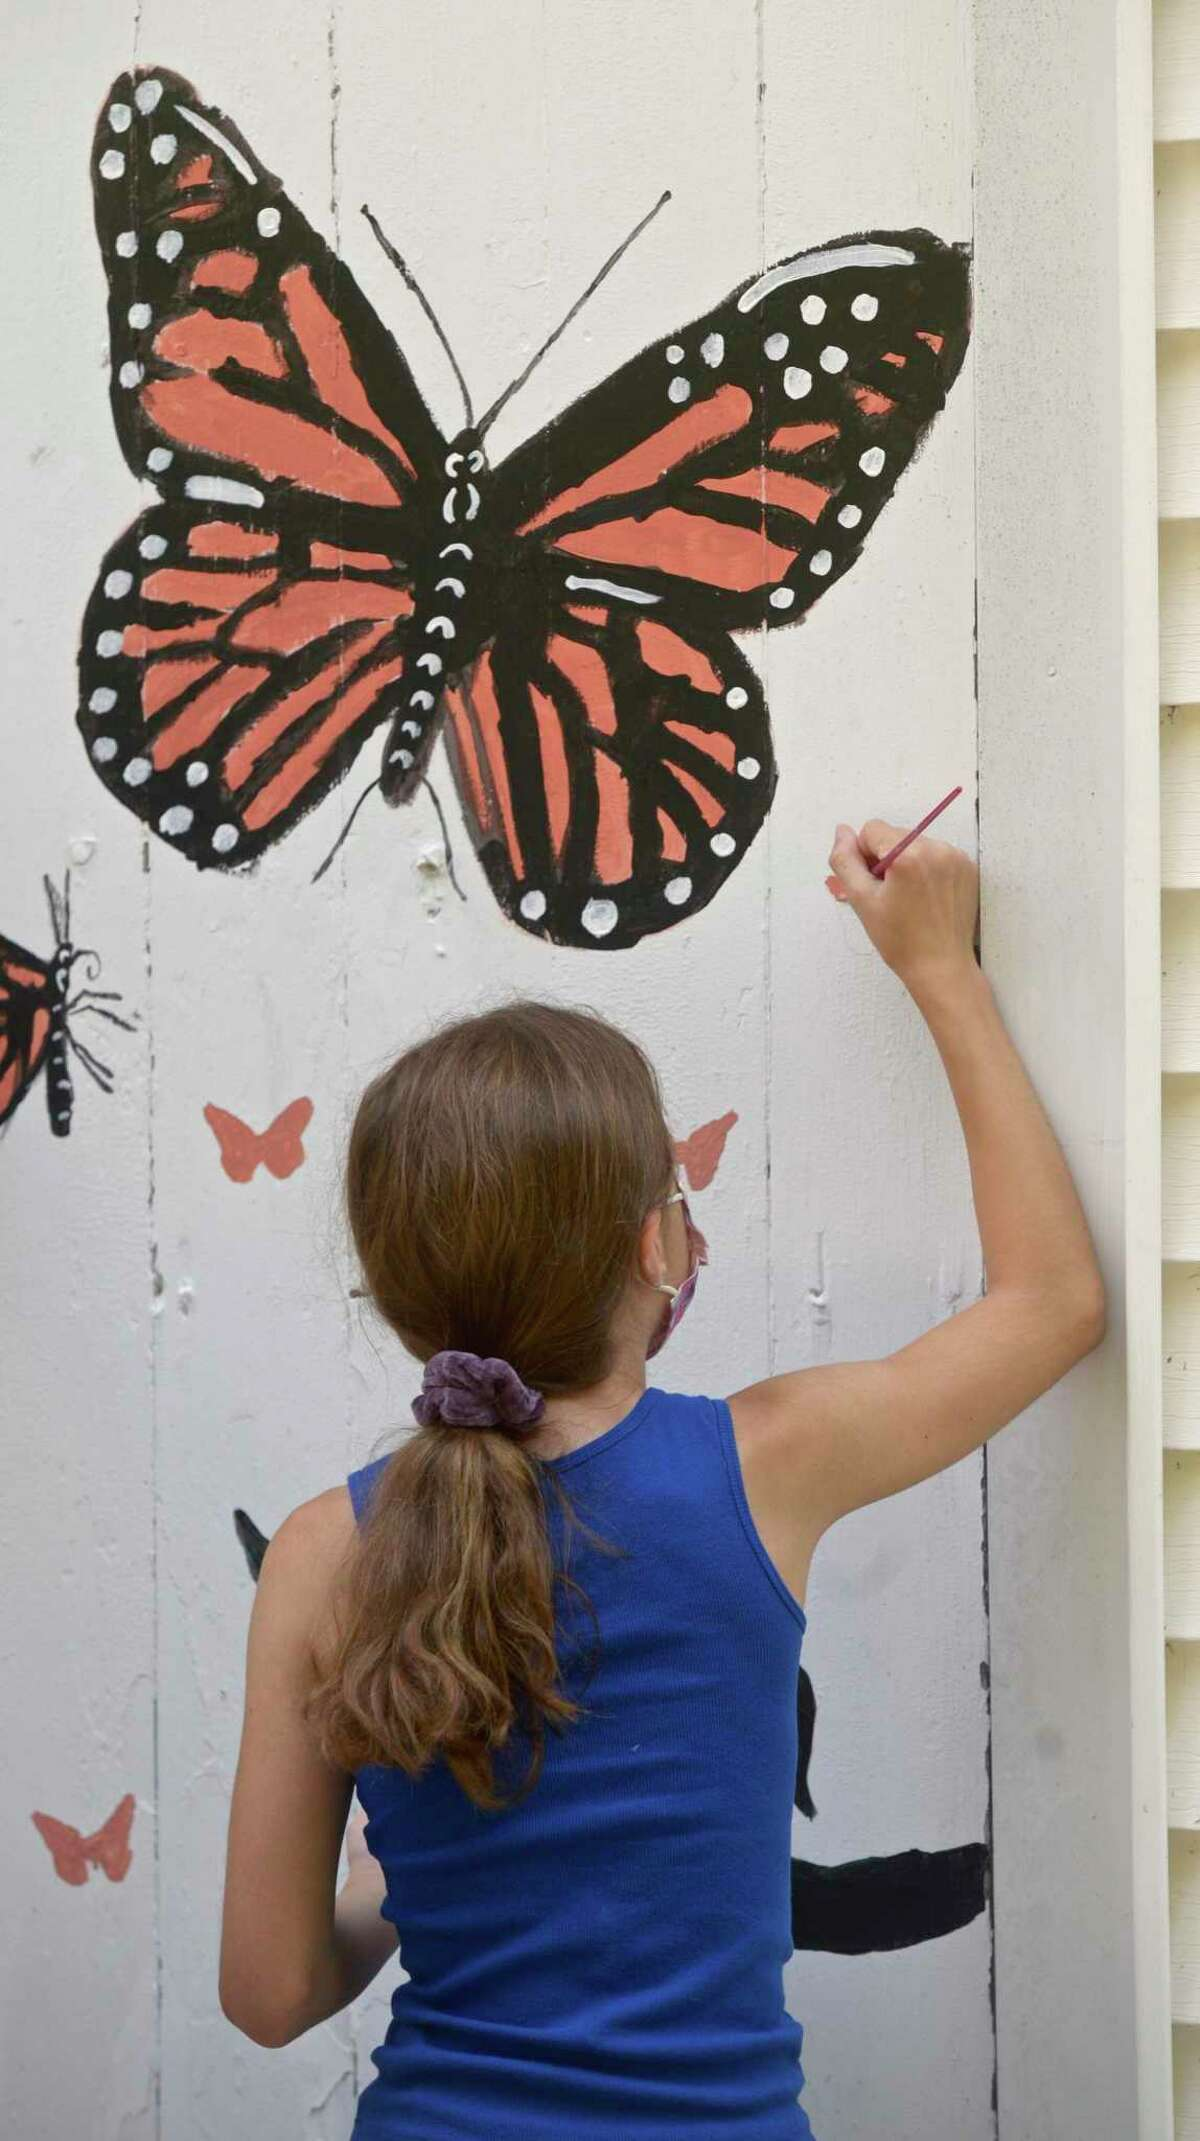 Students in the Ridgefield Guild of Artists' Summer Arts Program studied species of pollinators that live in the gardens in front the guild and have created murals on the inside and outside of the building. Friday, August 13, 2021; Ridgefield, Conn.